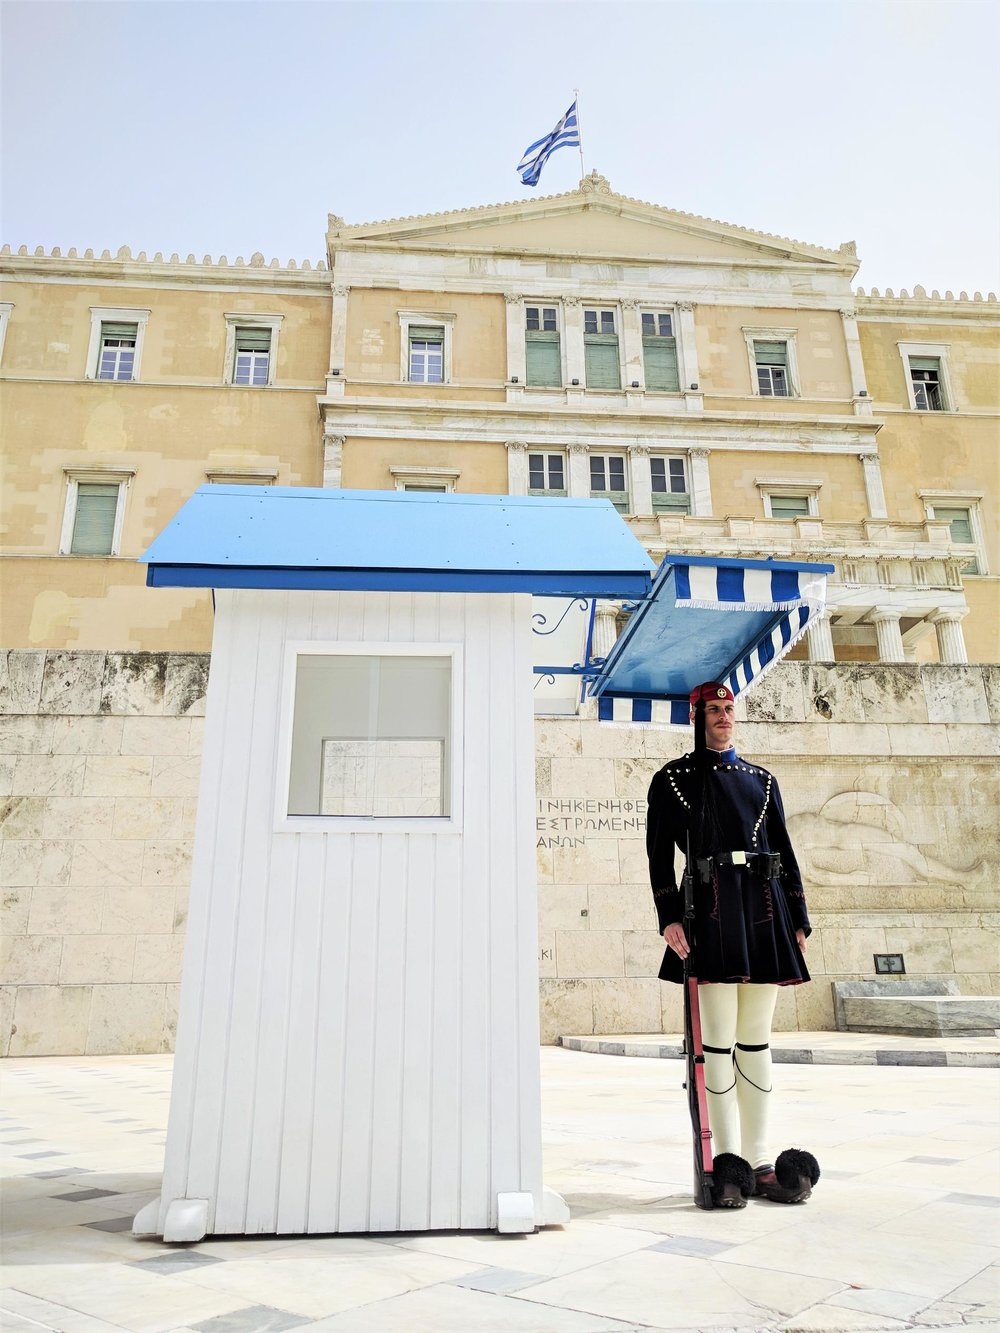 The Parliament guard ( tsolias  or  evzonas ) wearing the traditional uniform and shoes ( tsarouchia ). Source: Truevoyagers